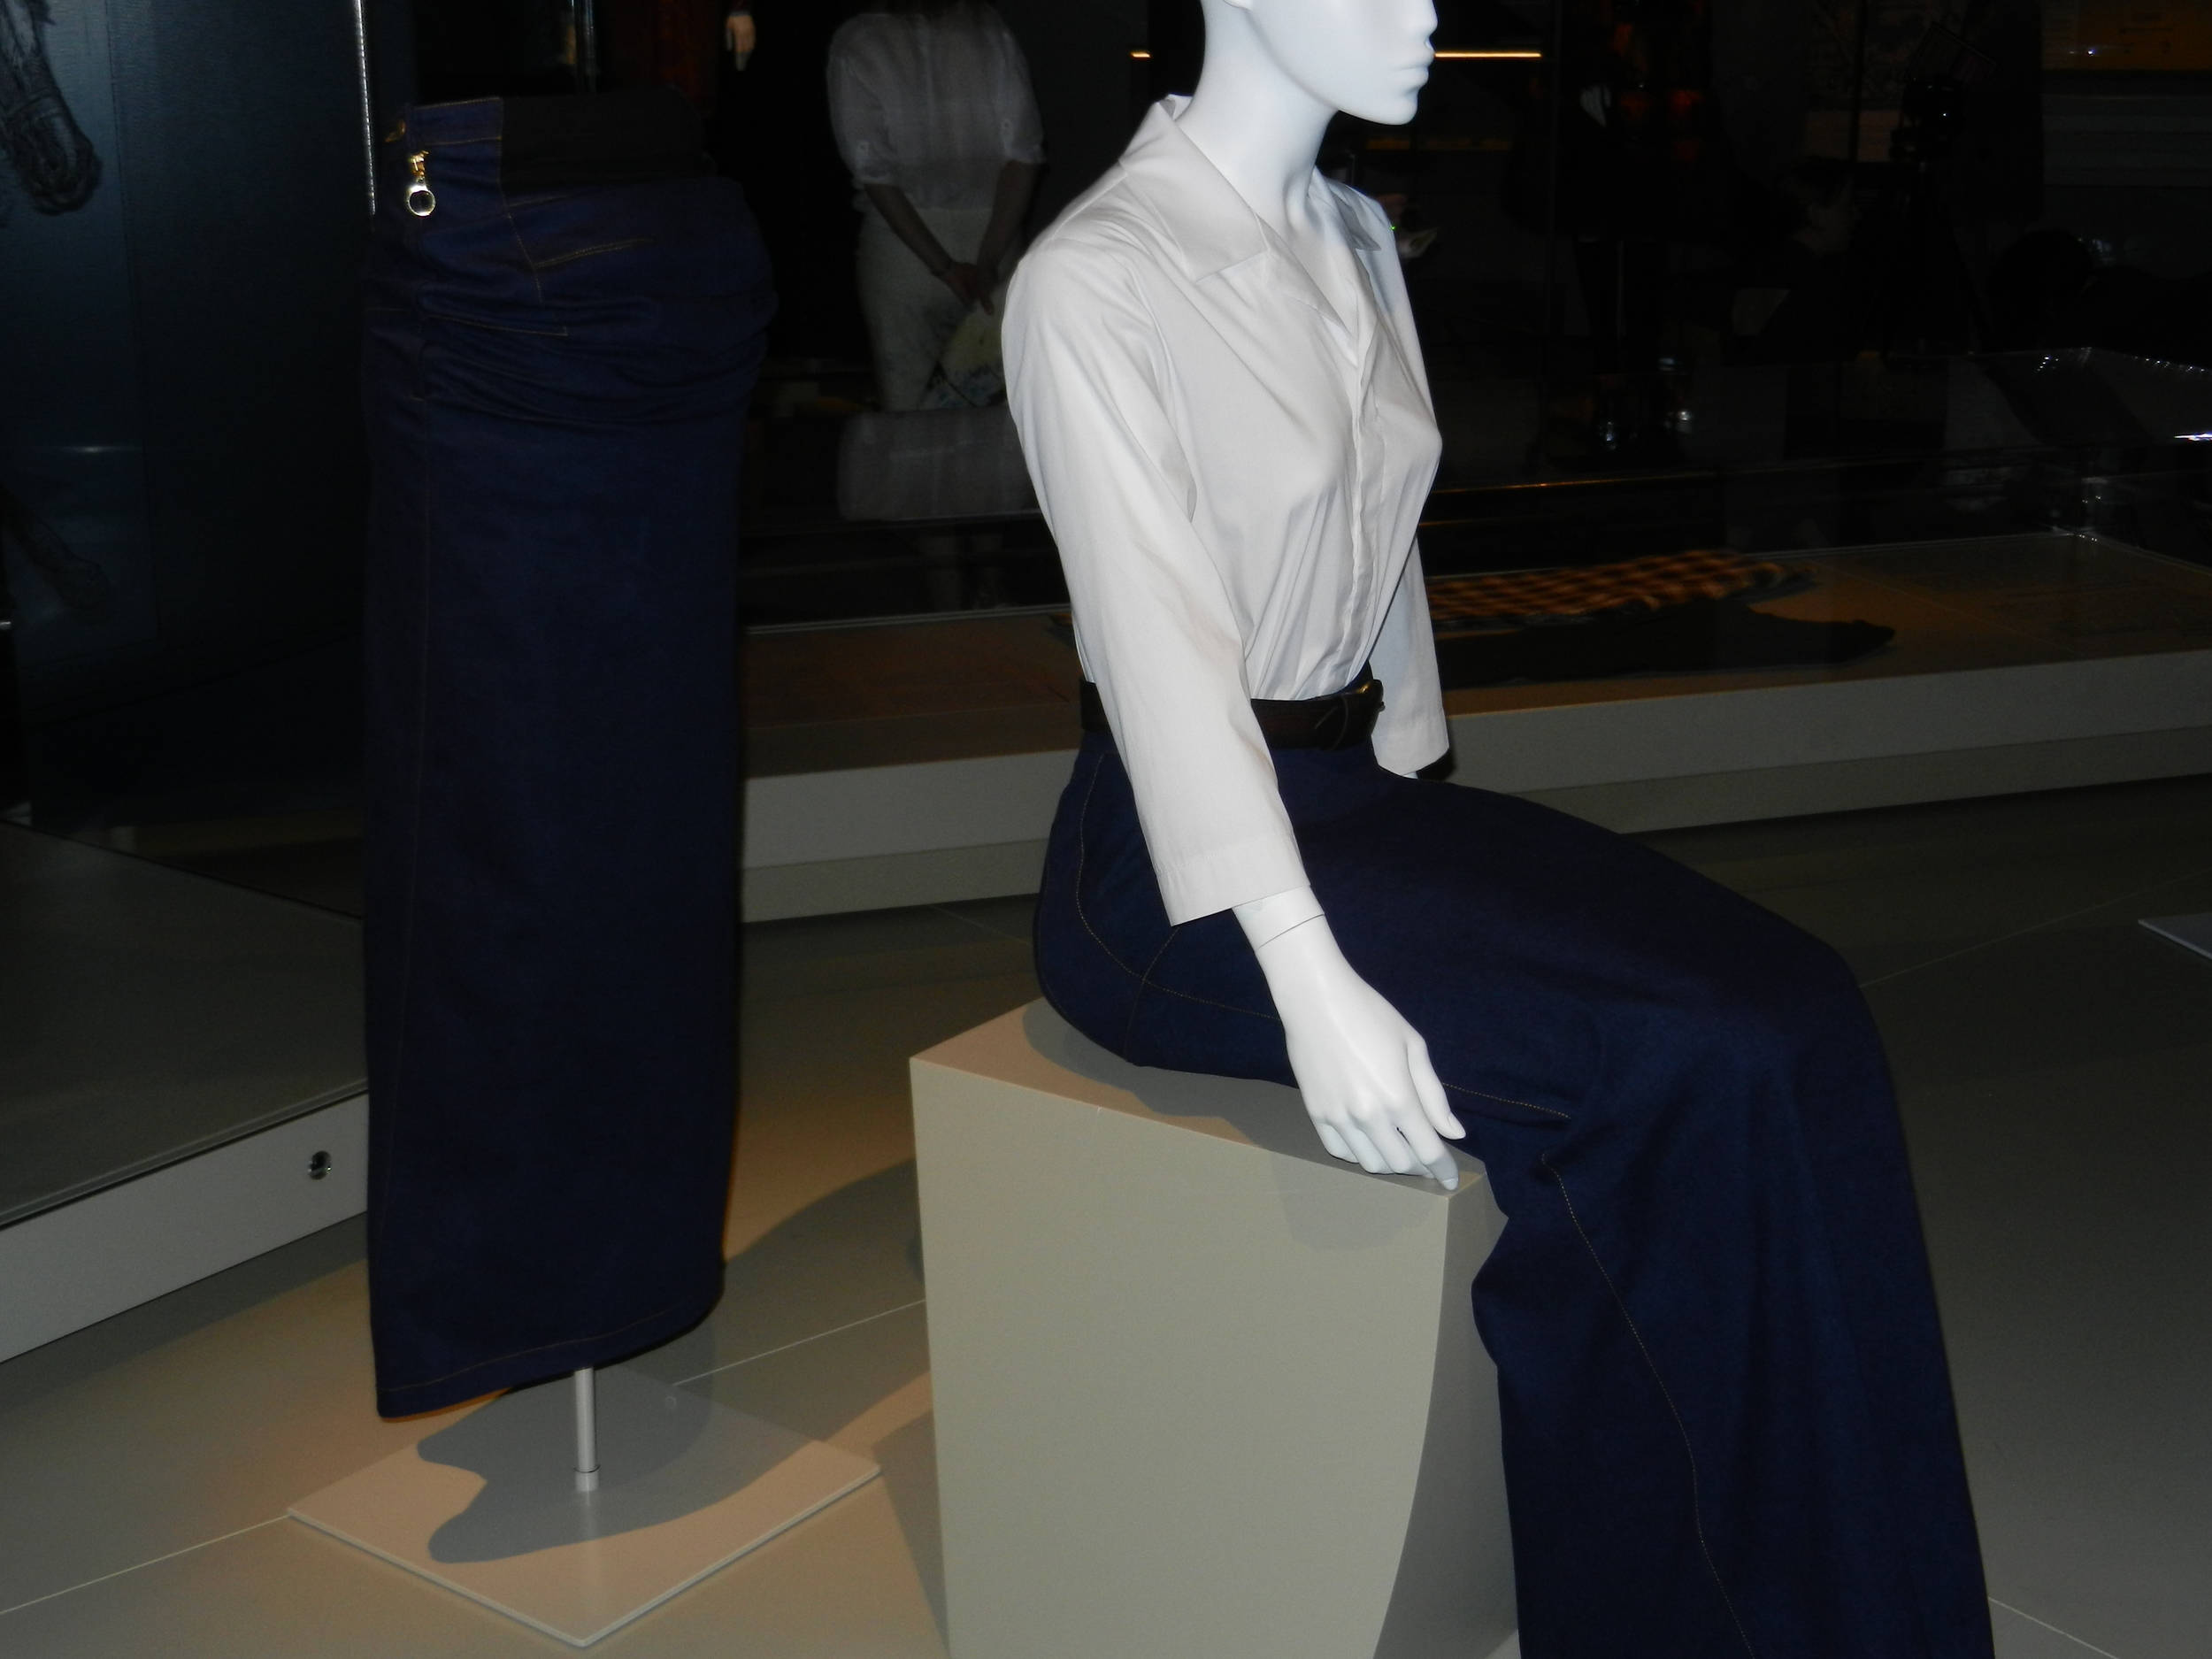 Picture of mannequin wearing blue skirt sitting down.